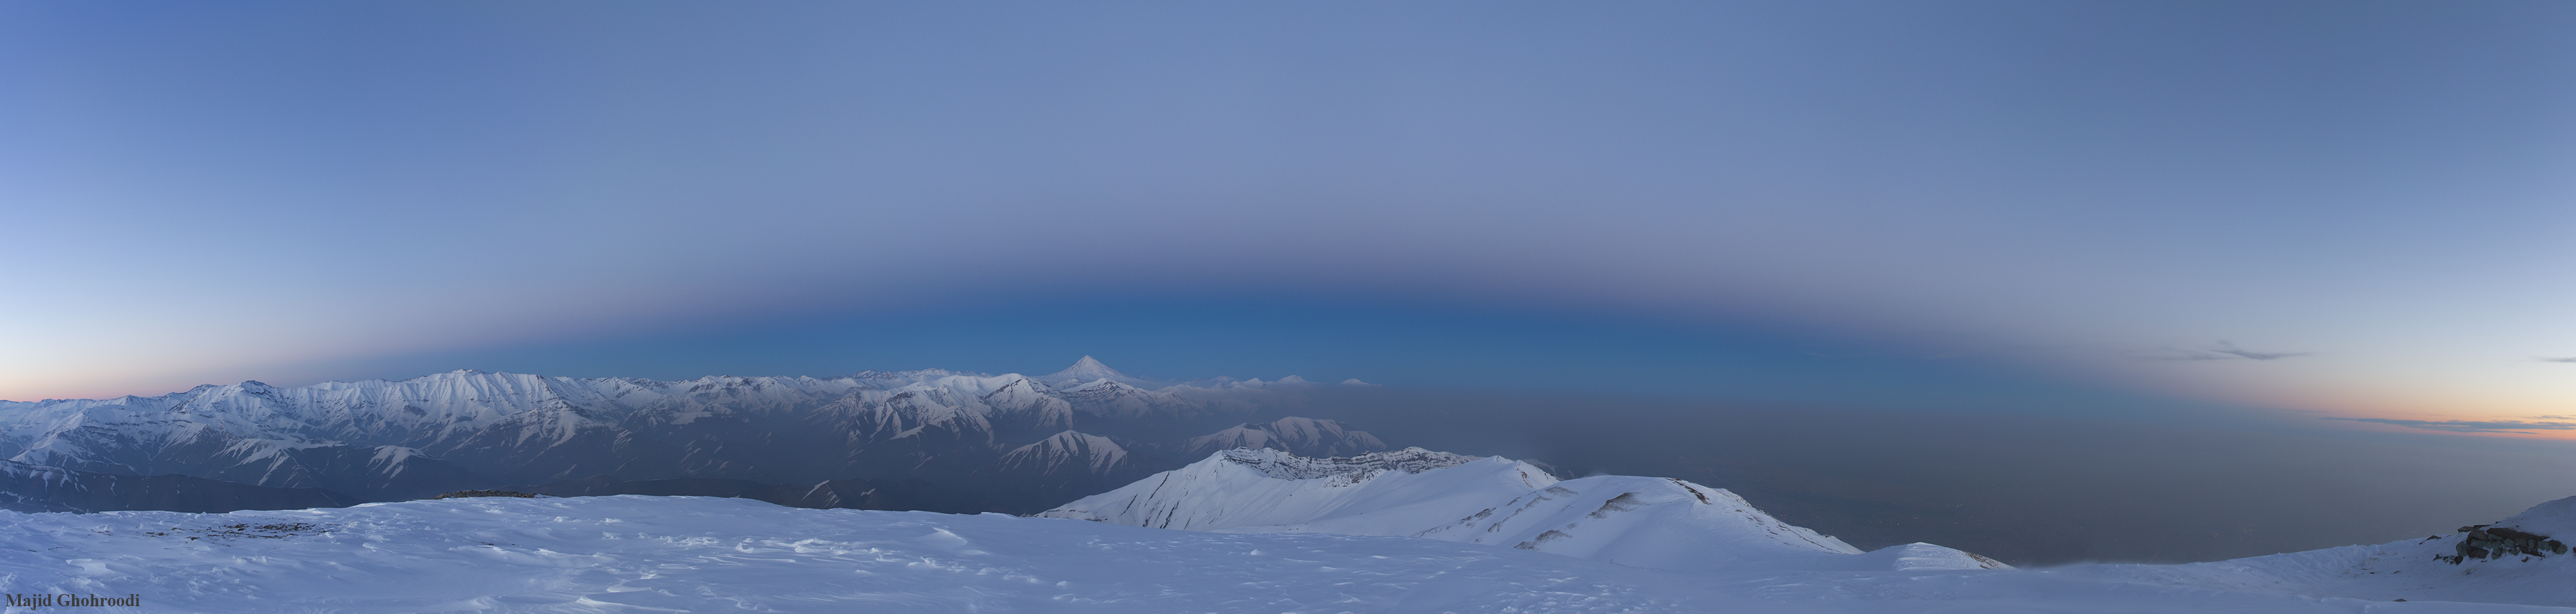 Earth Shadow over Damavand